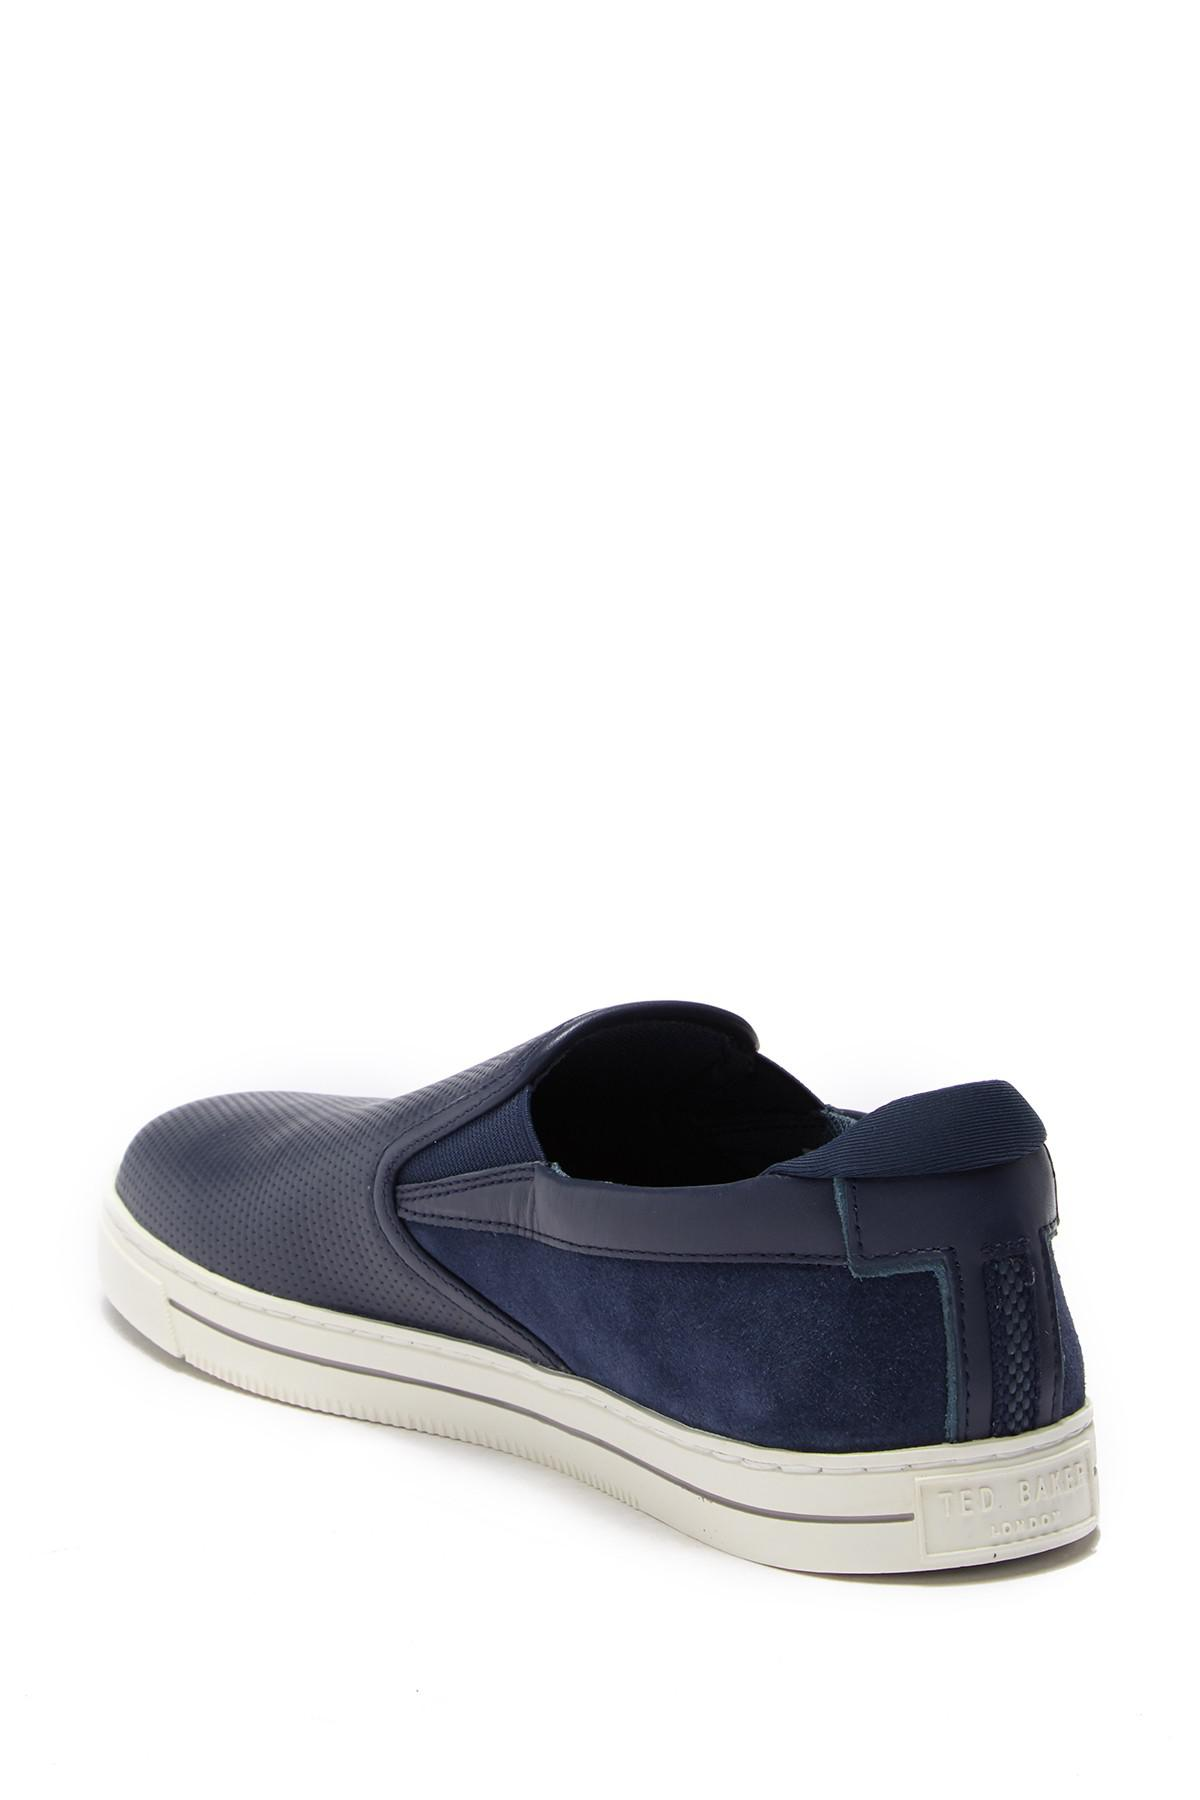 064306910 Lyst - Ted Baker Patroy Perforated Slip-on Sneaker in Blue for Men